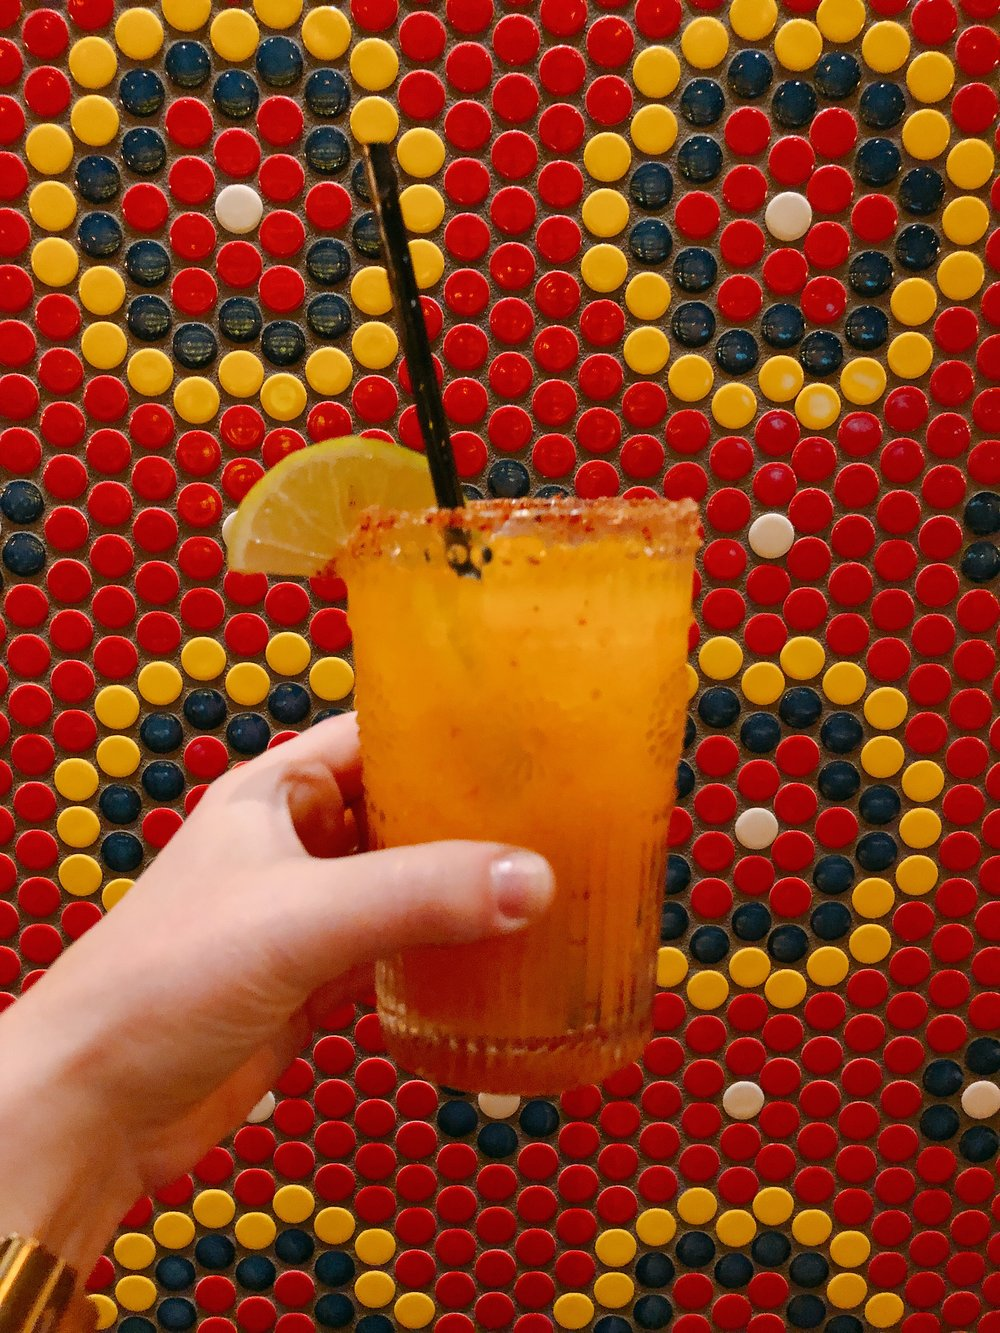 Chile-Mango Margarita: Tequila + House Curacao + Habanero + Mango + Ancho Chile Salted Rim